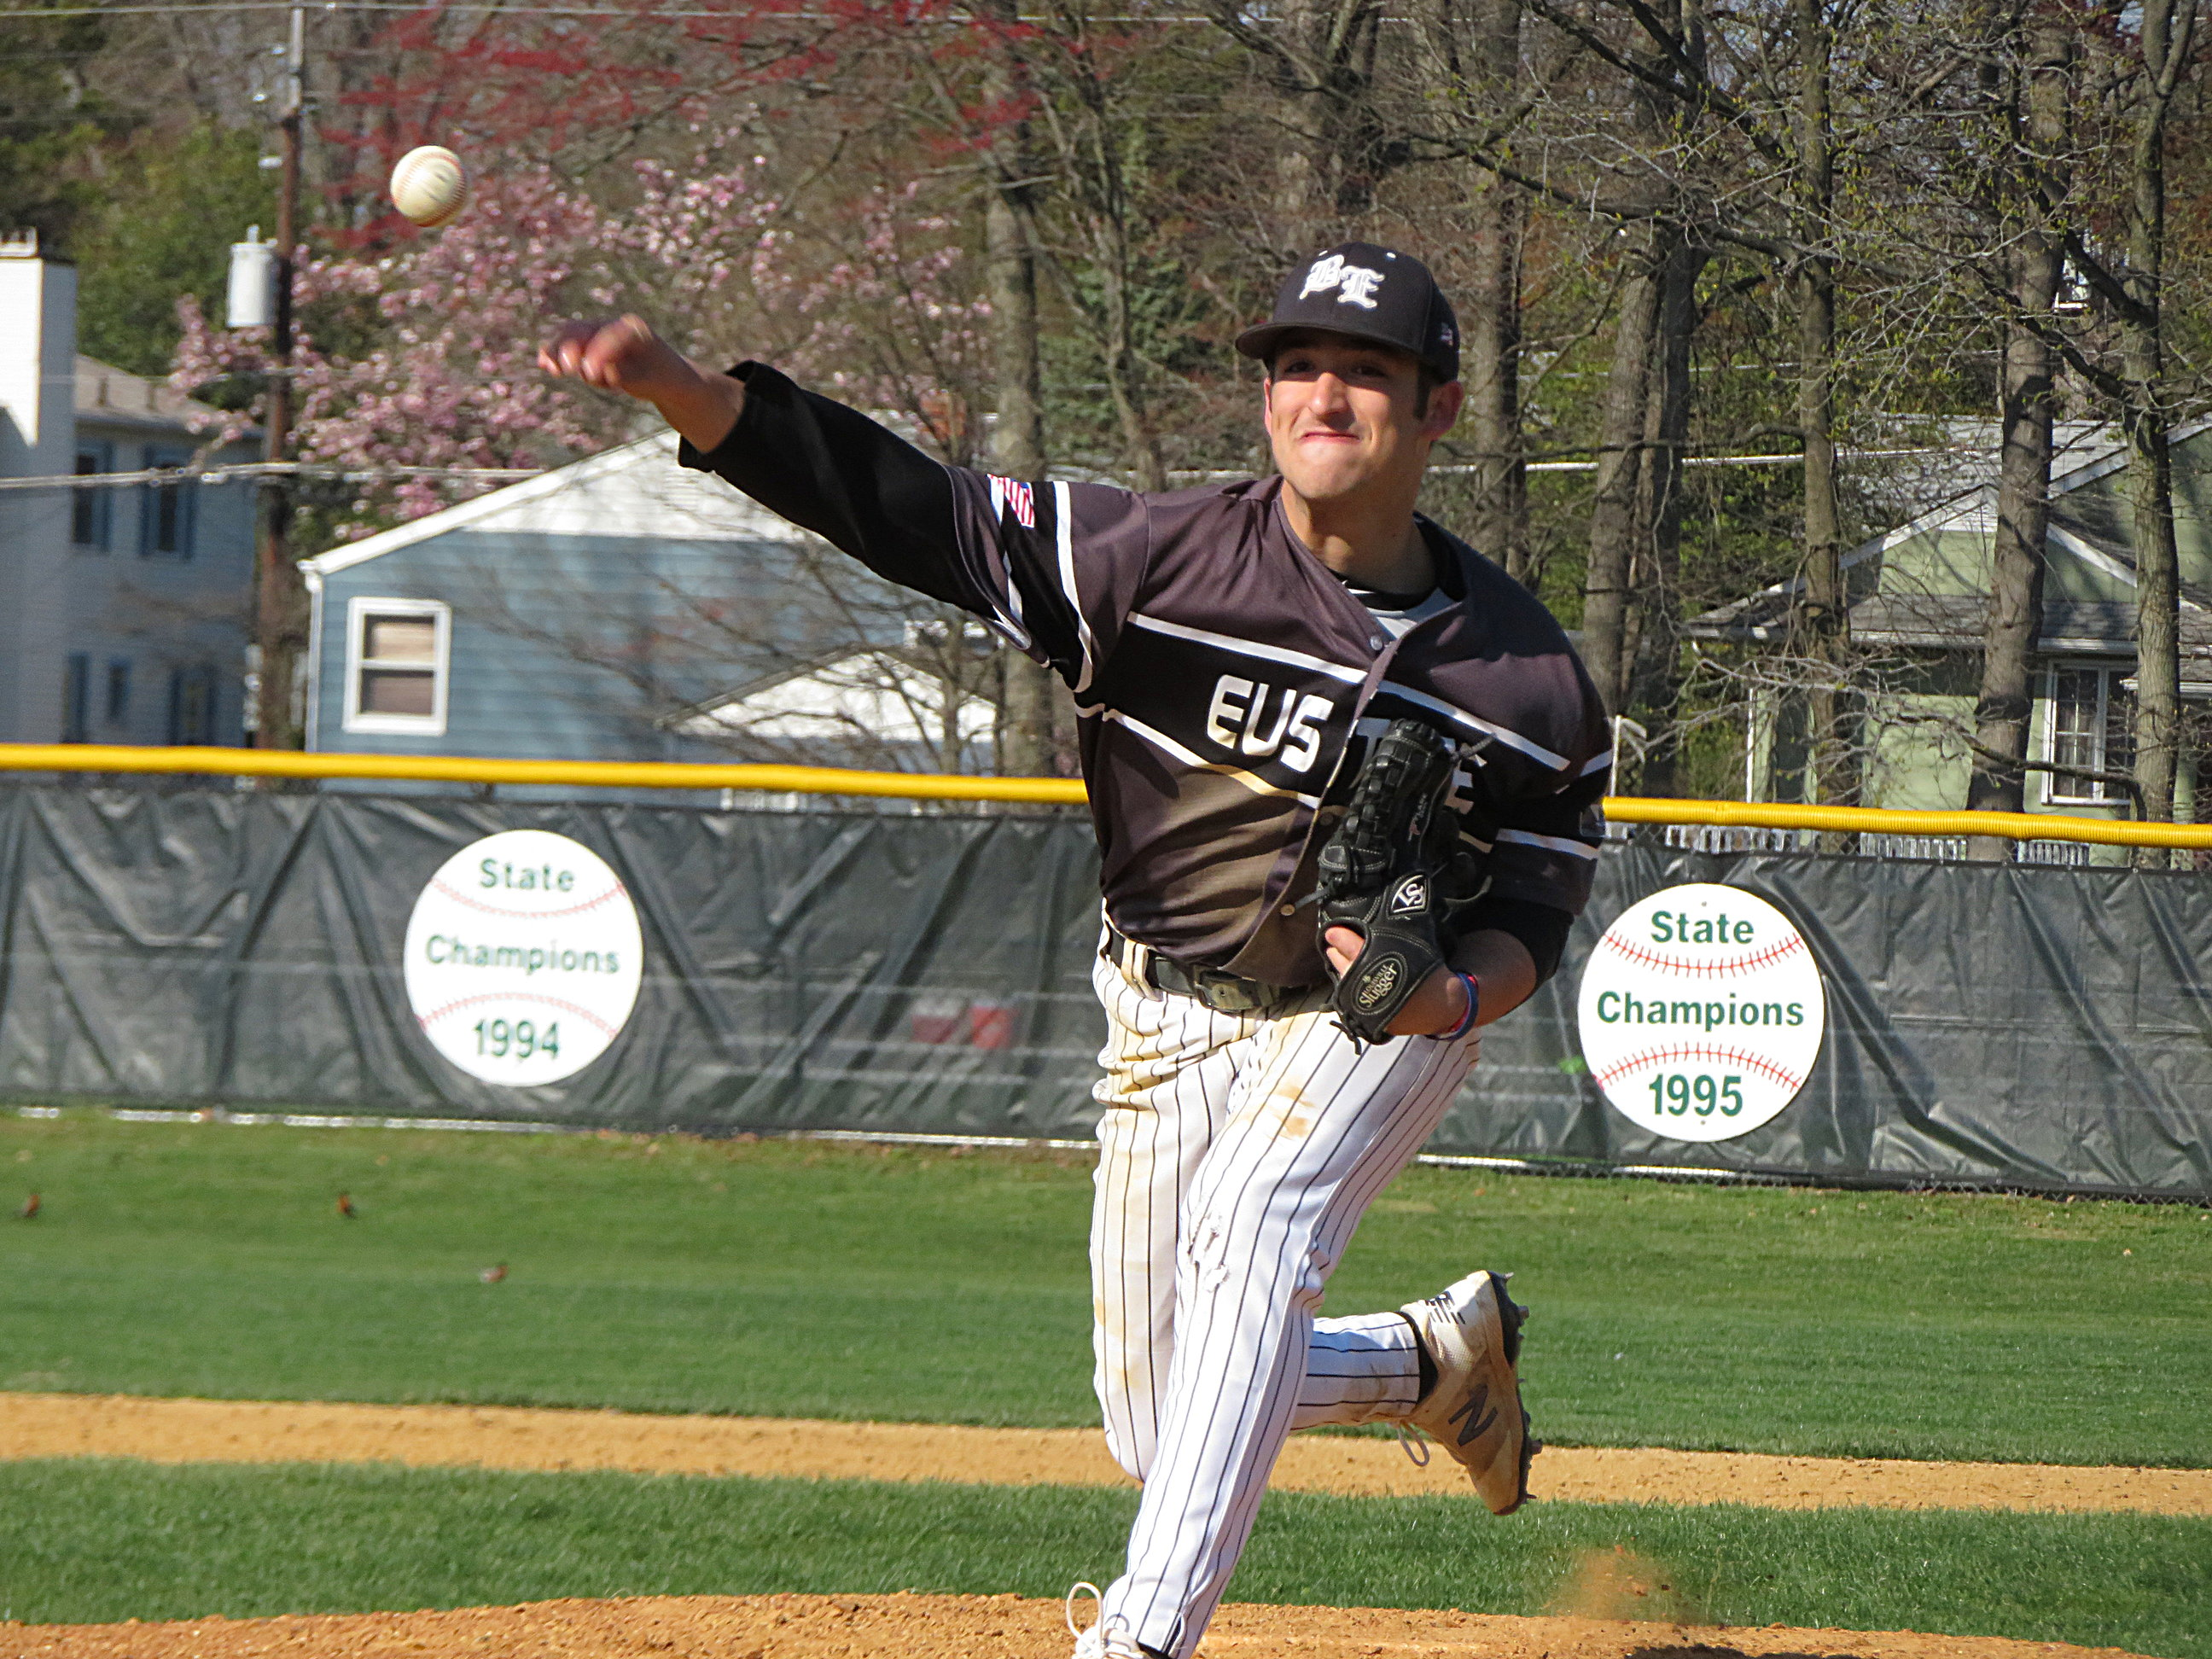 Senior Sky Duff made his pitching debut last year as a reliever but the senior is now a key starter for Bishop Eustace.